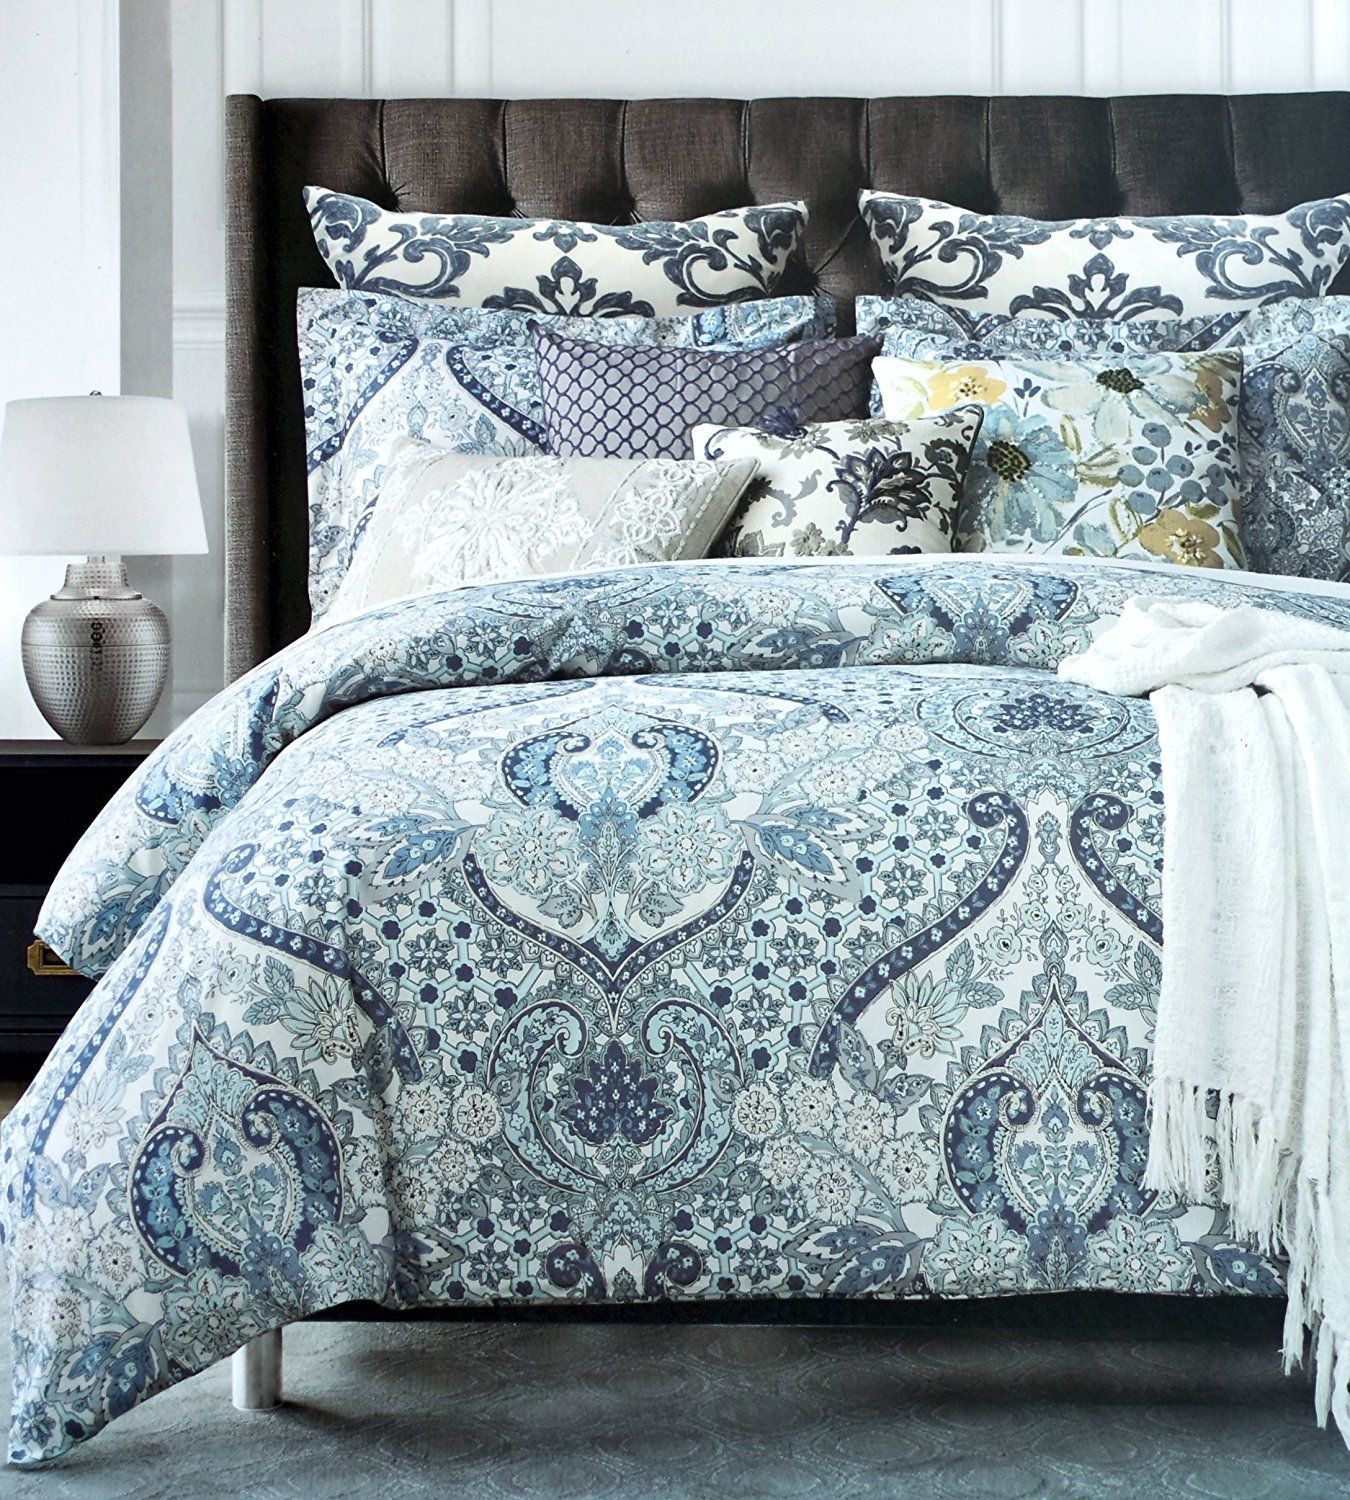 cream sets white linen quilt furniture curtain stunning king grey marvelous sheets comforter decoration queen bohemian and gray duvet bedroom set bedding blue black